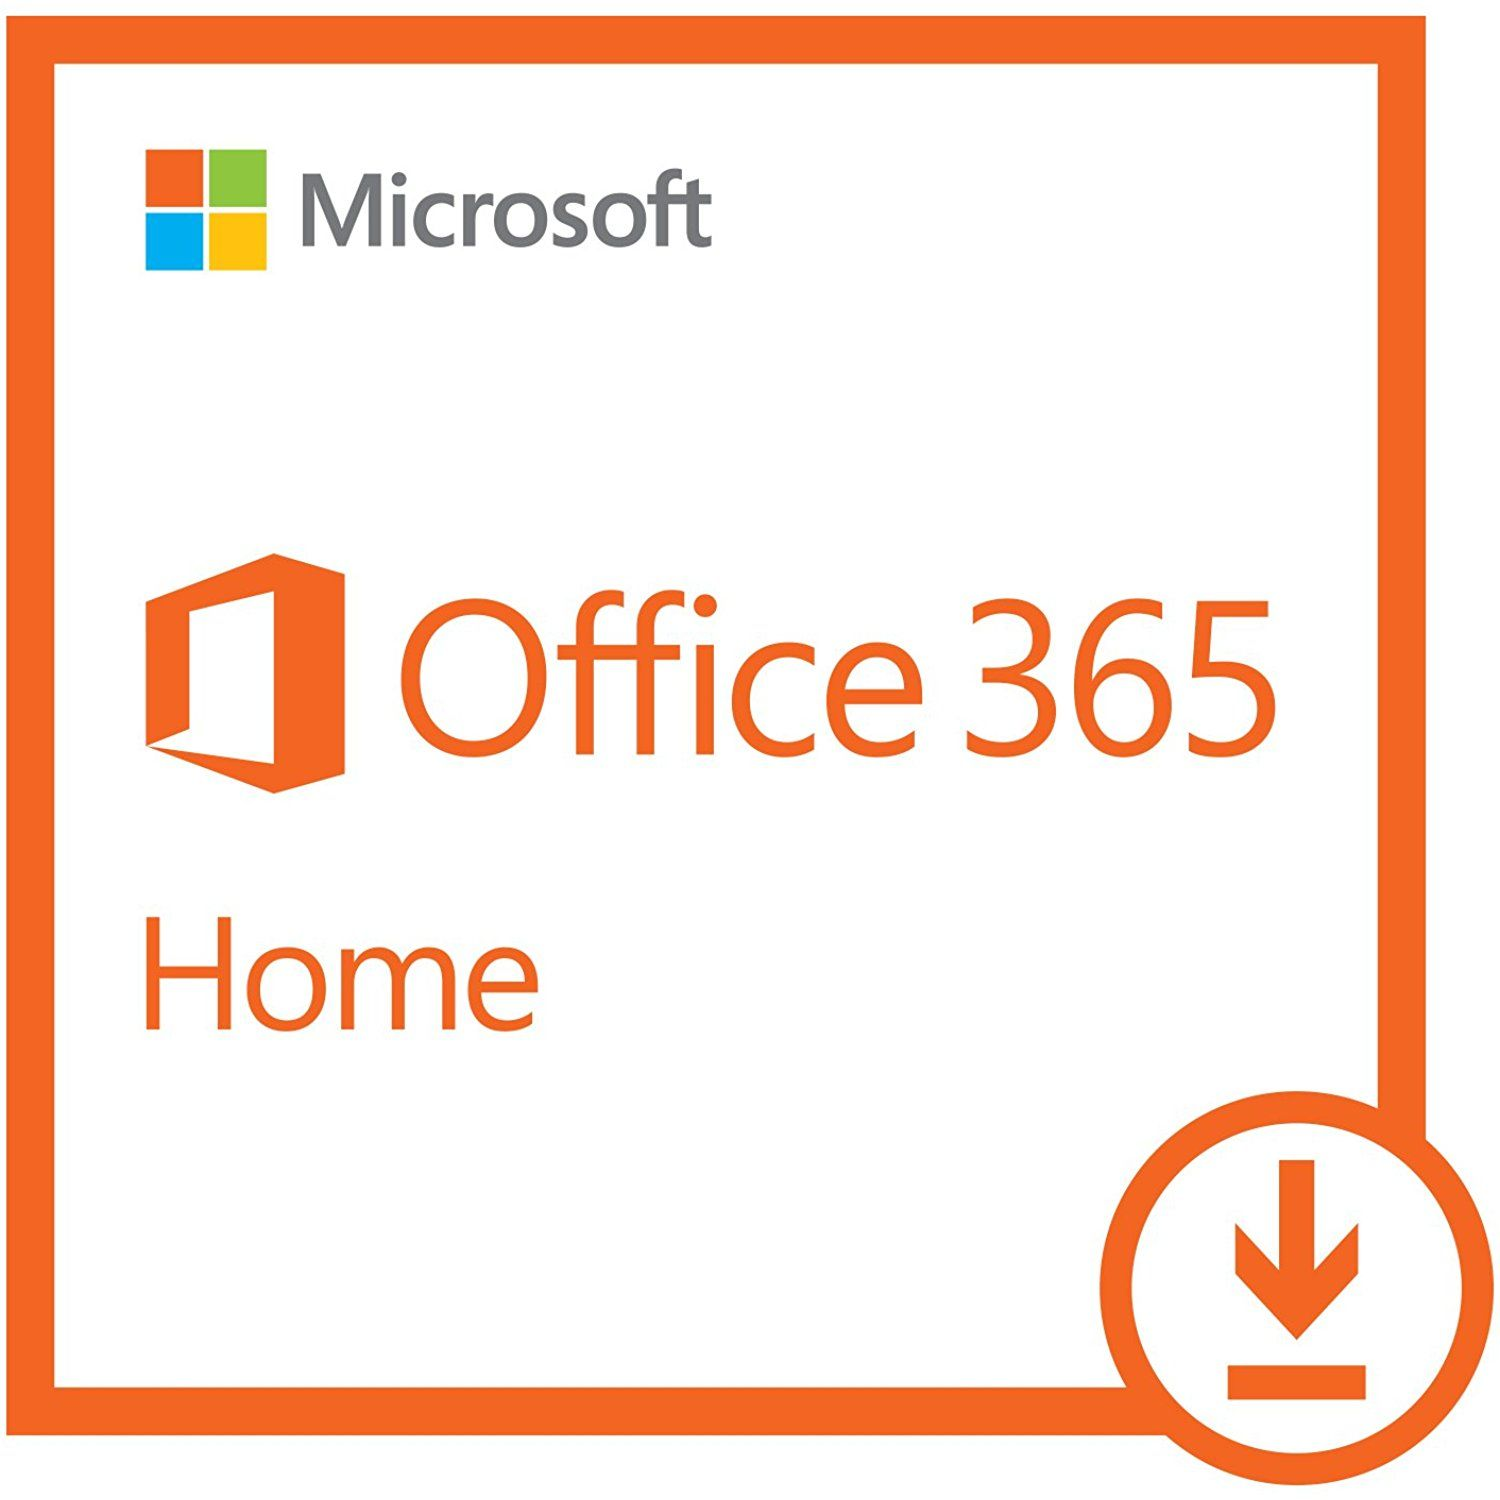 Microsoft Office 365 Home 1 Year Subscription 5 Users Pc Mac Download Continue To The Product At Microsoft Office Office 365 Personal Office 365